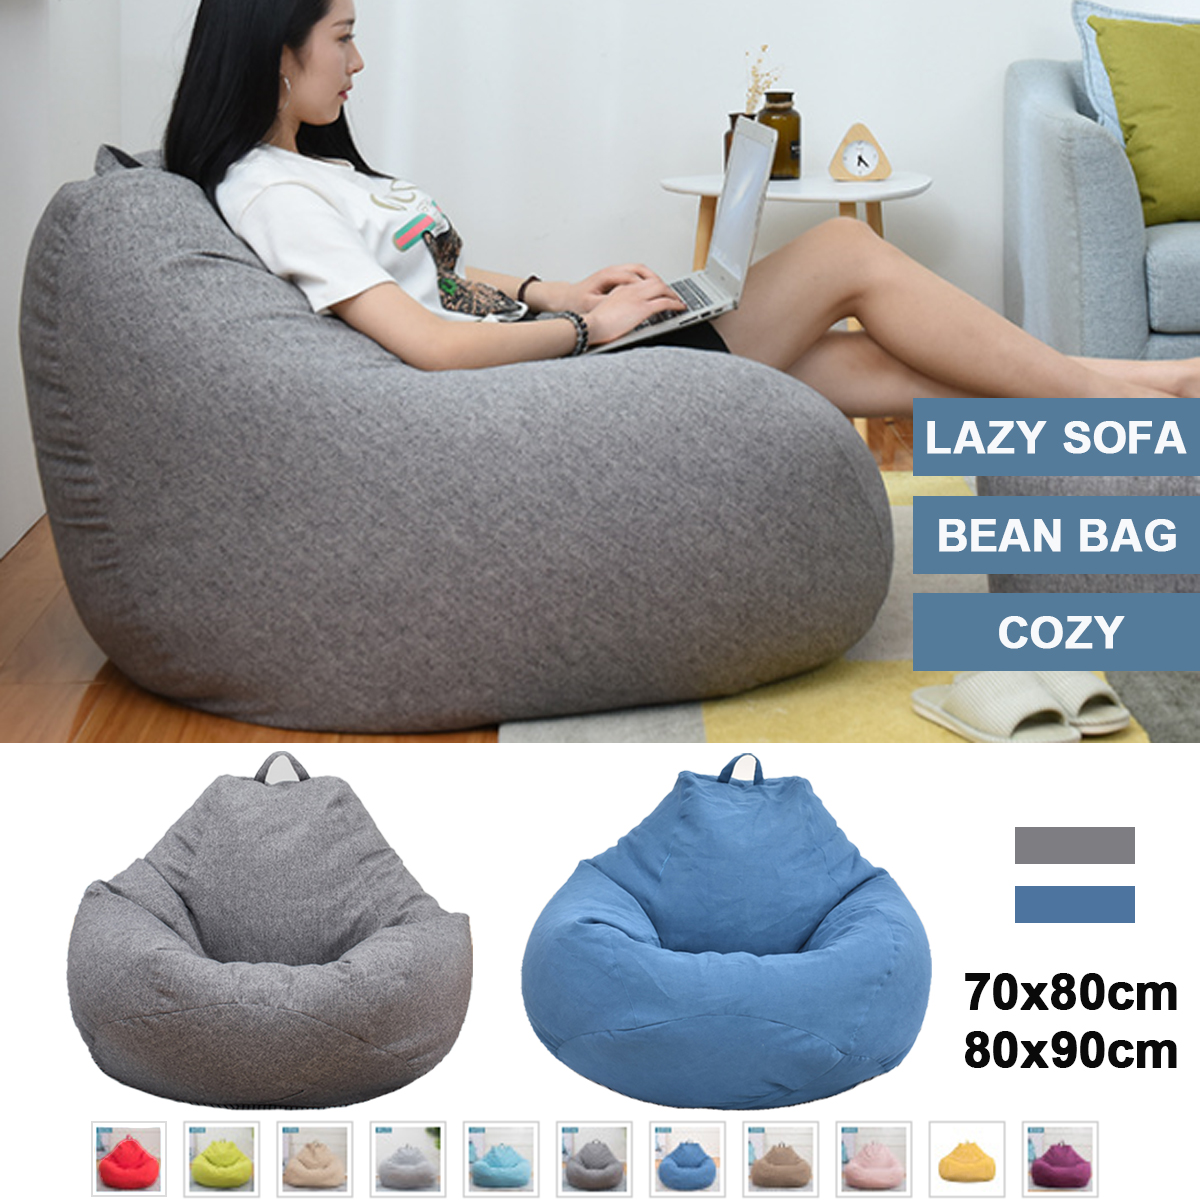 Fine Details About Large Bean Bag Chair Sofa Couch Cover Tall Gamer Indoor Lazy Lounger Adults Short Links Chair Design For Home Short Linksinfo